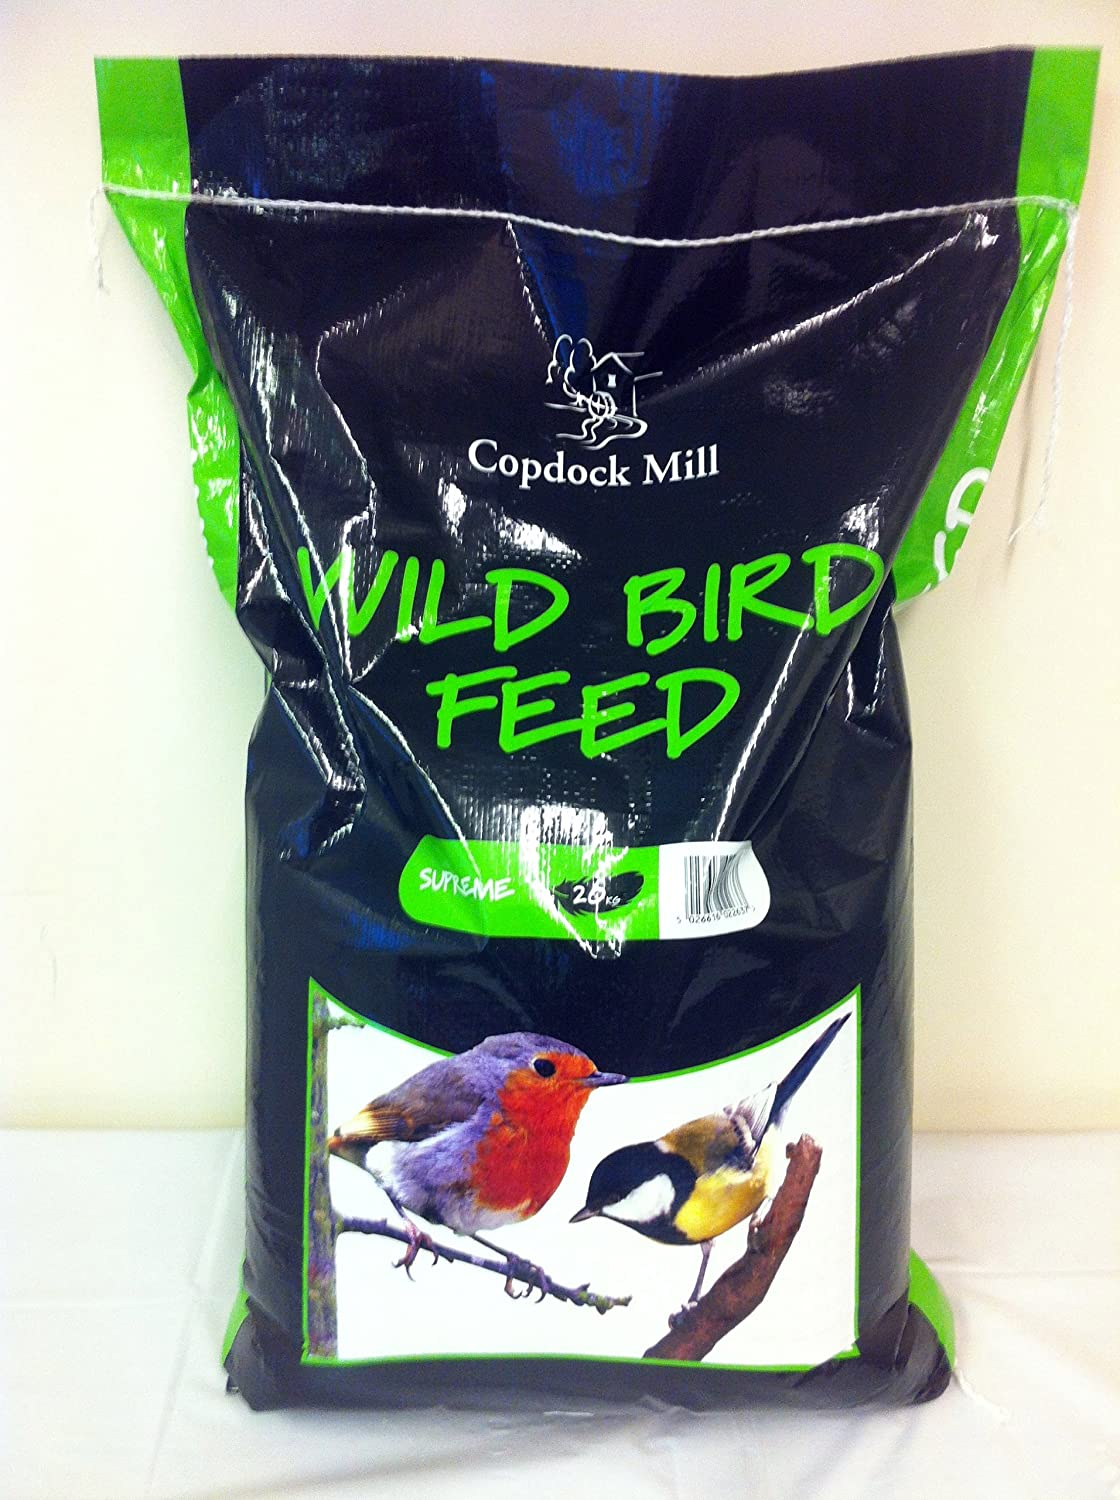 20KG WILD BIRD SEED PREMIUM QUALITY FOOD MIX. GARDEN OUTDOOR FEEDERS TABLE BOX Copdock Mill